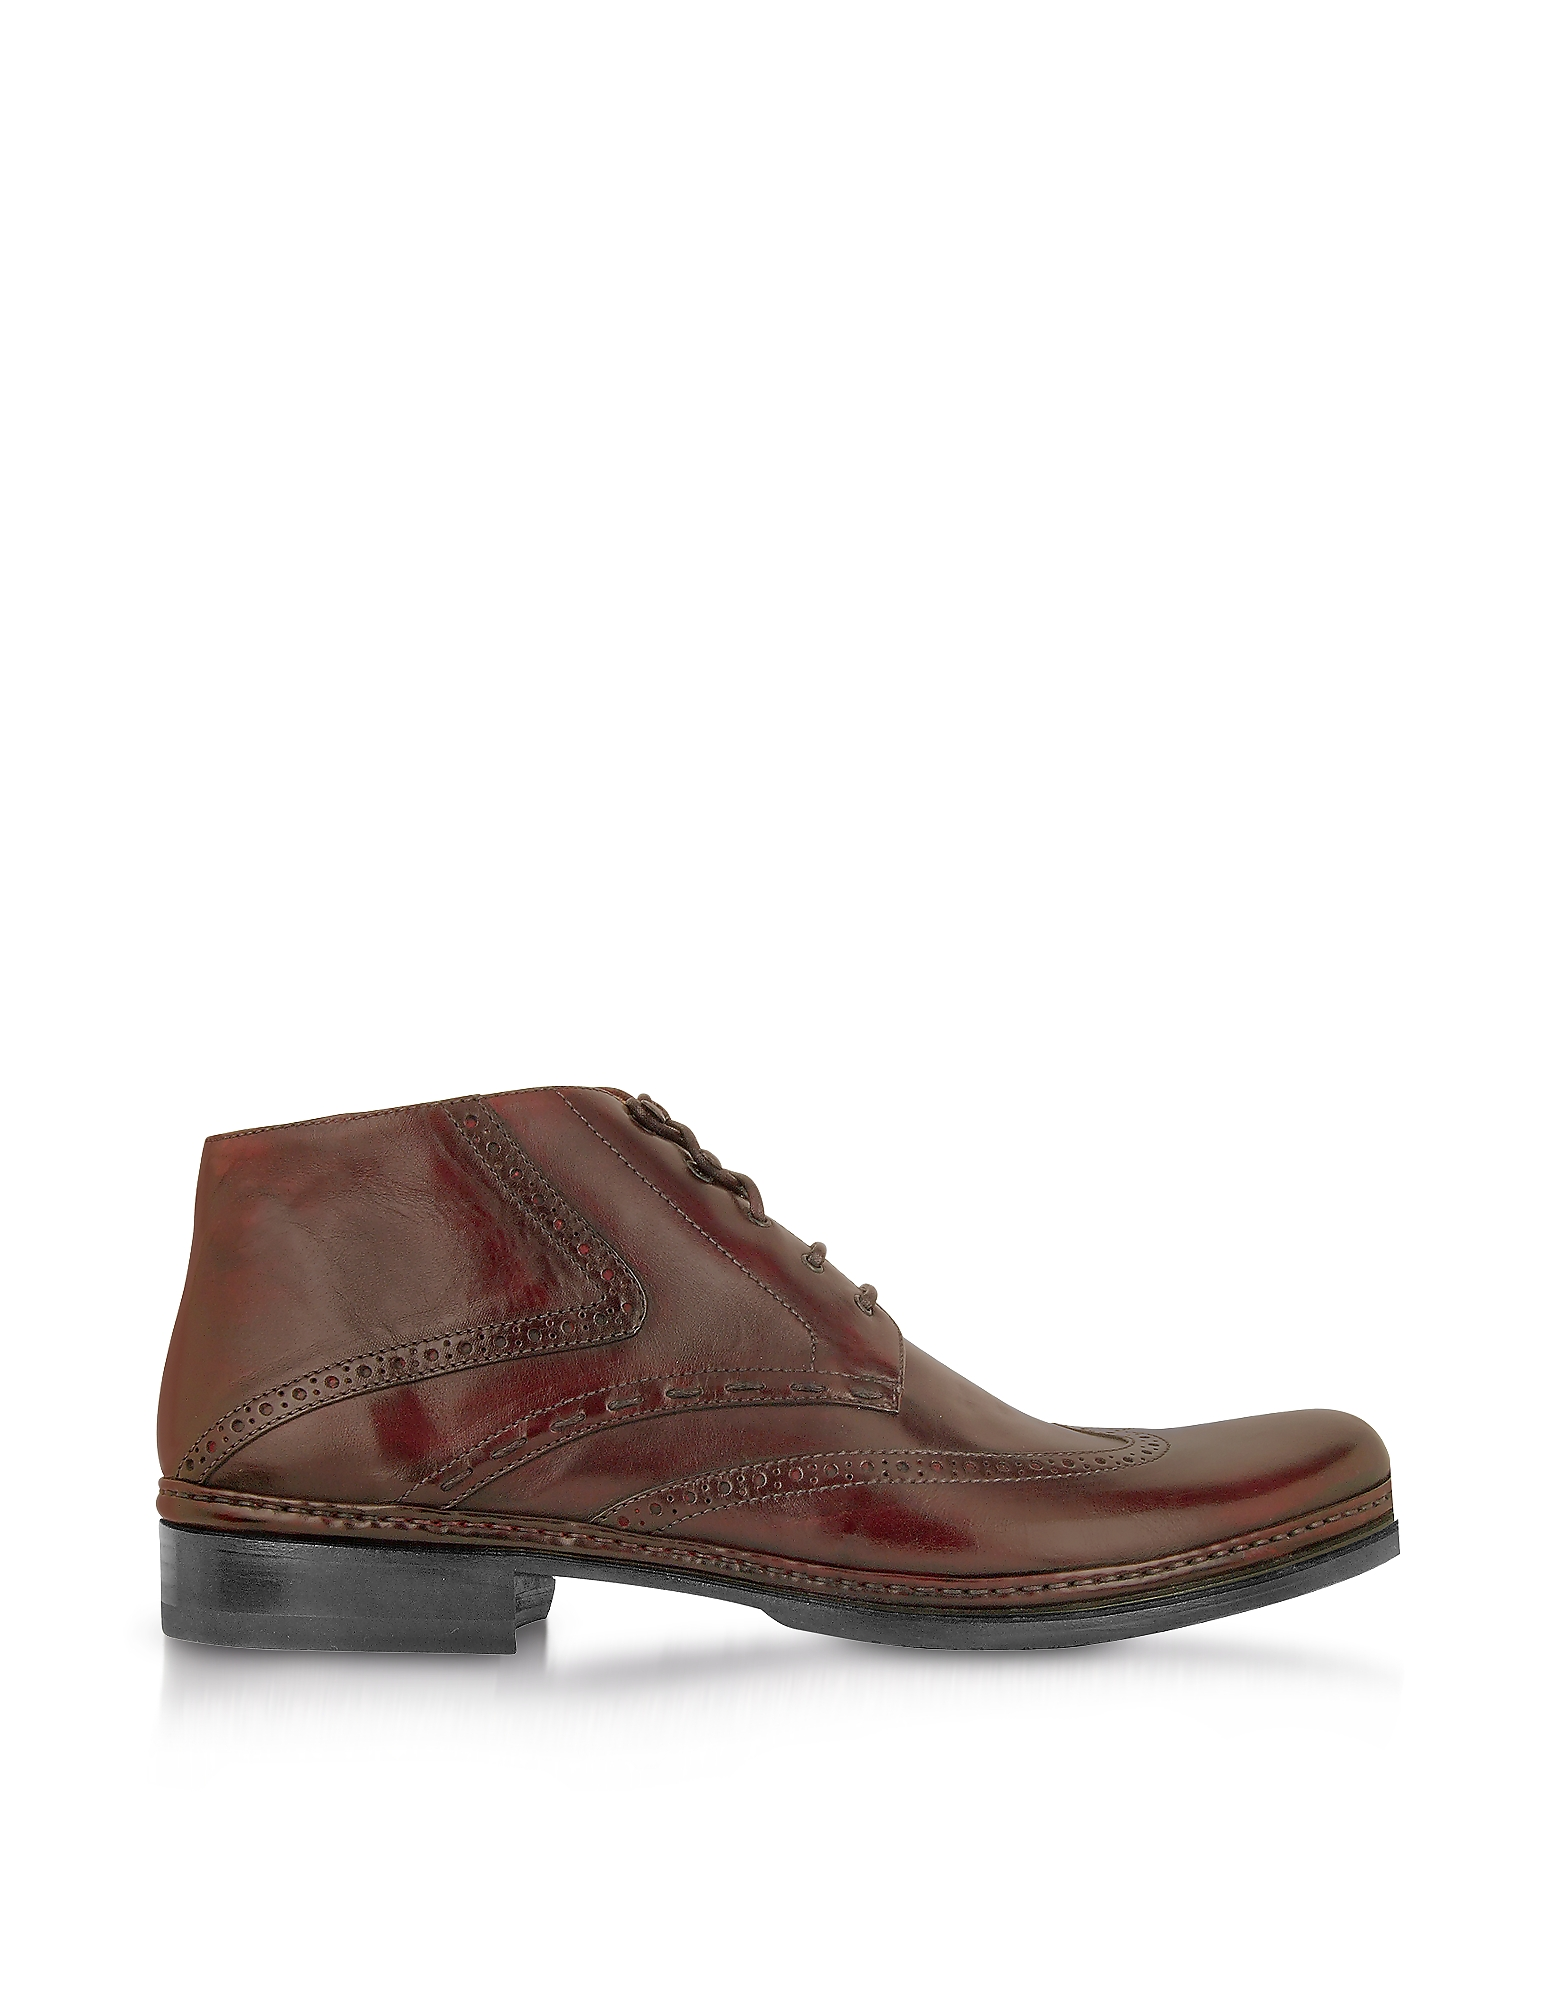 Pakerson Shoes, Burgundy Handmade Italian Leather Wingtip Ankle Boots